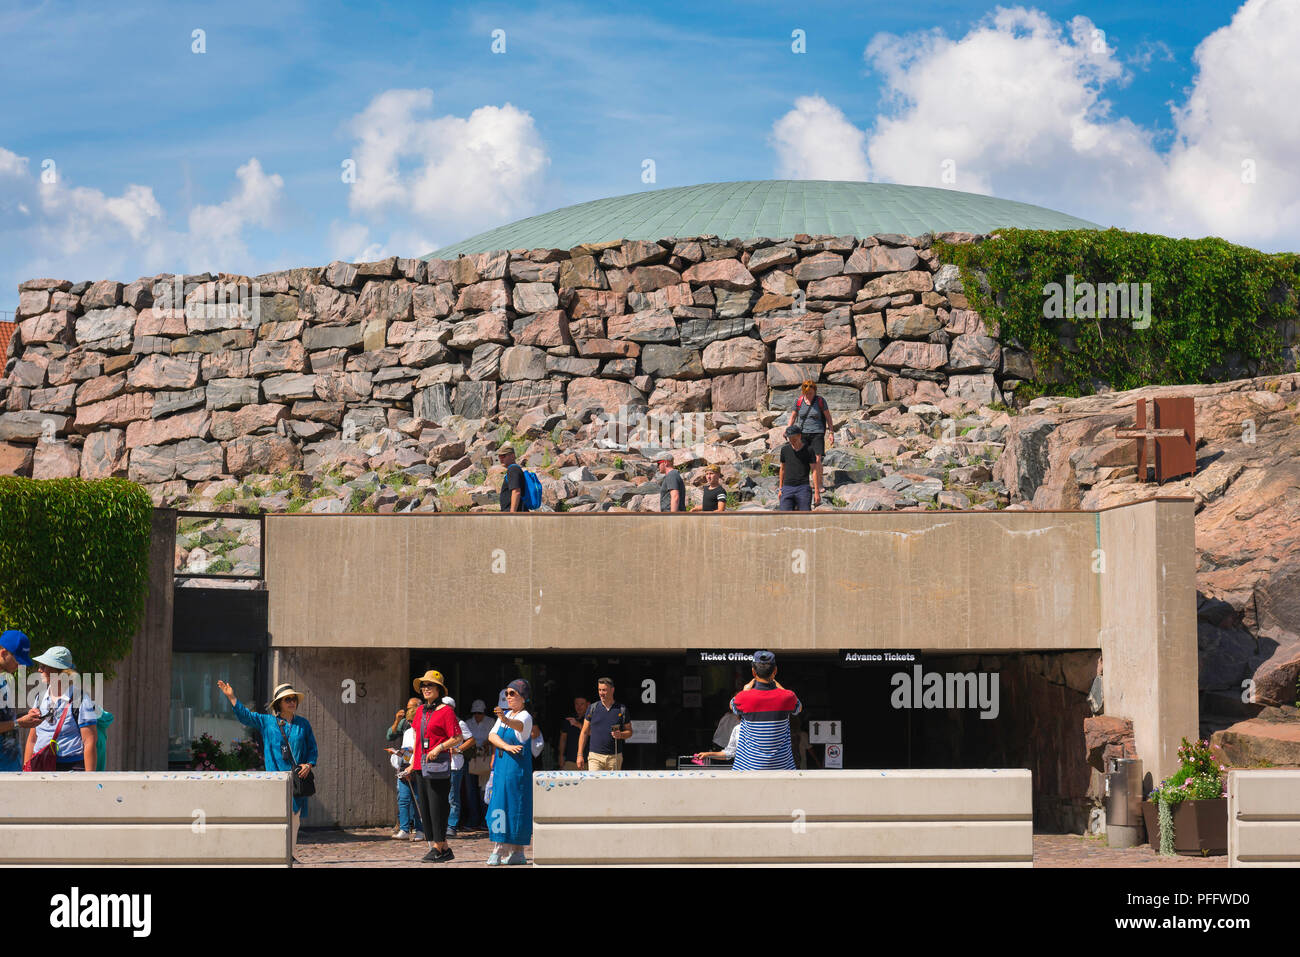 Helsinki architecture Finland, view of the entrance to the Temppeliaukio Kirkko, a church built into solid rock in the centre of Helsinki, Finland. Stock Photo